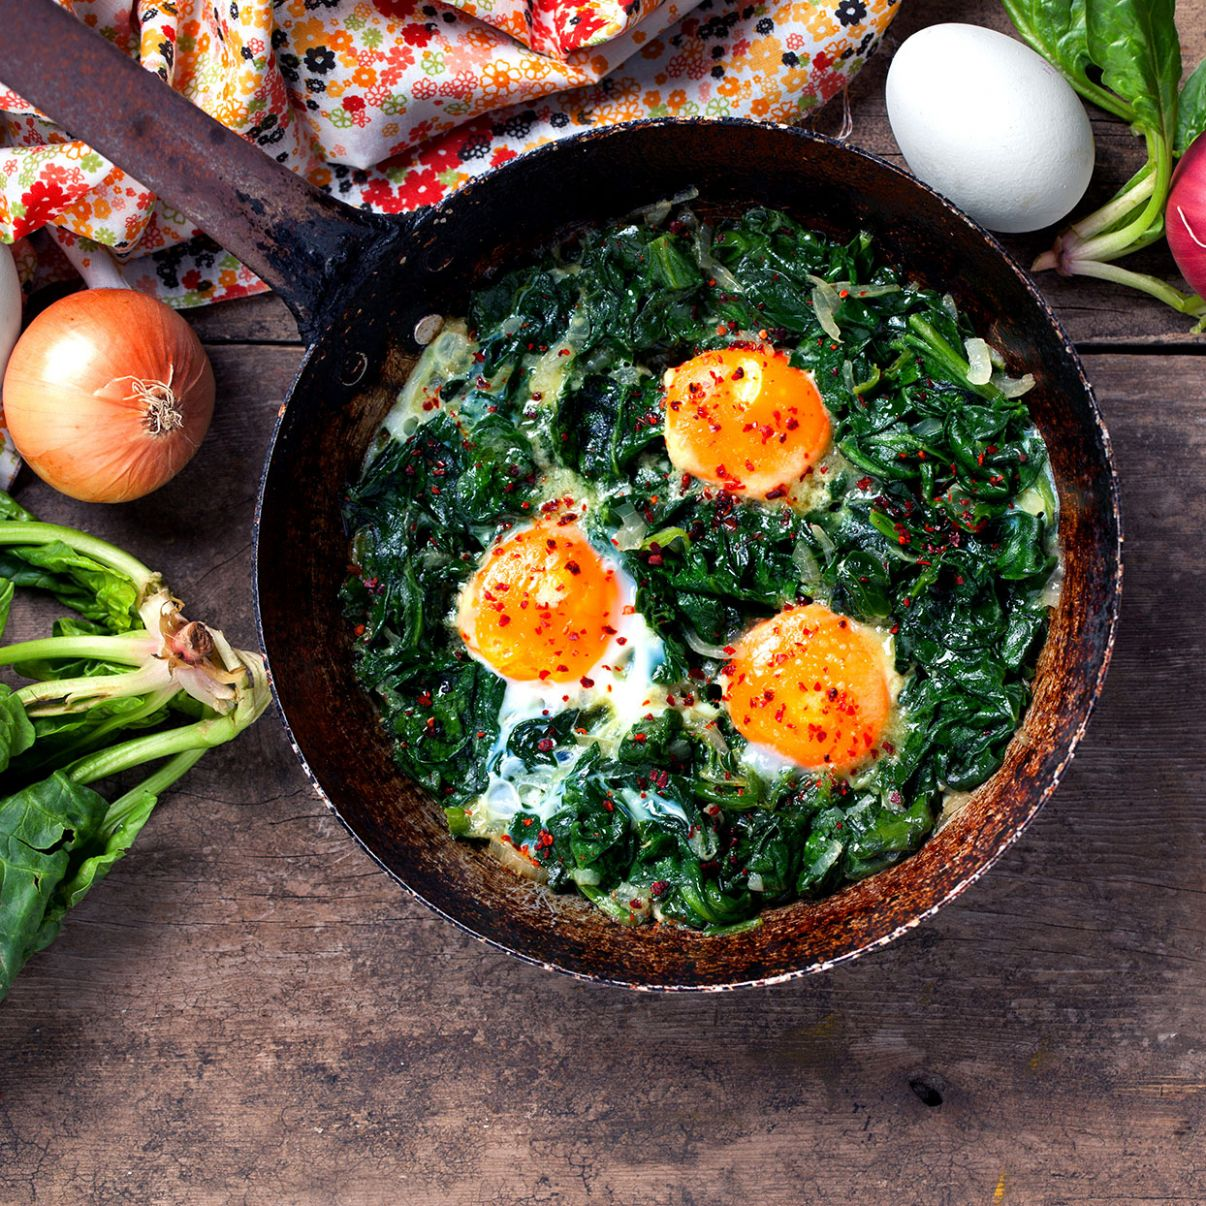 Healthy Breakfasts for Weight Loss | Shape - Weight Loss Egg Recipes